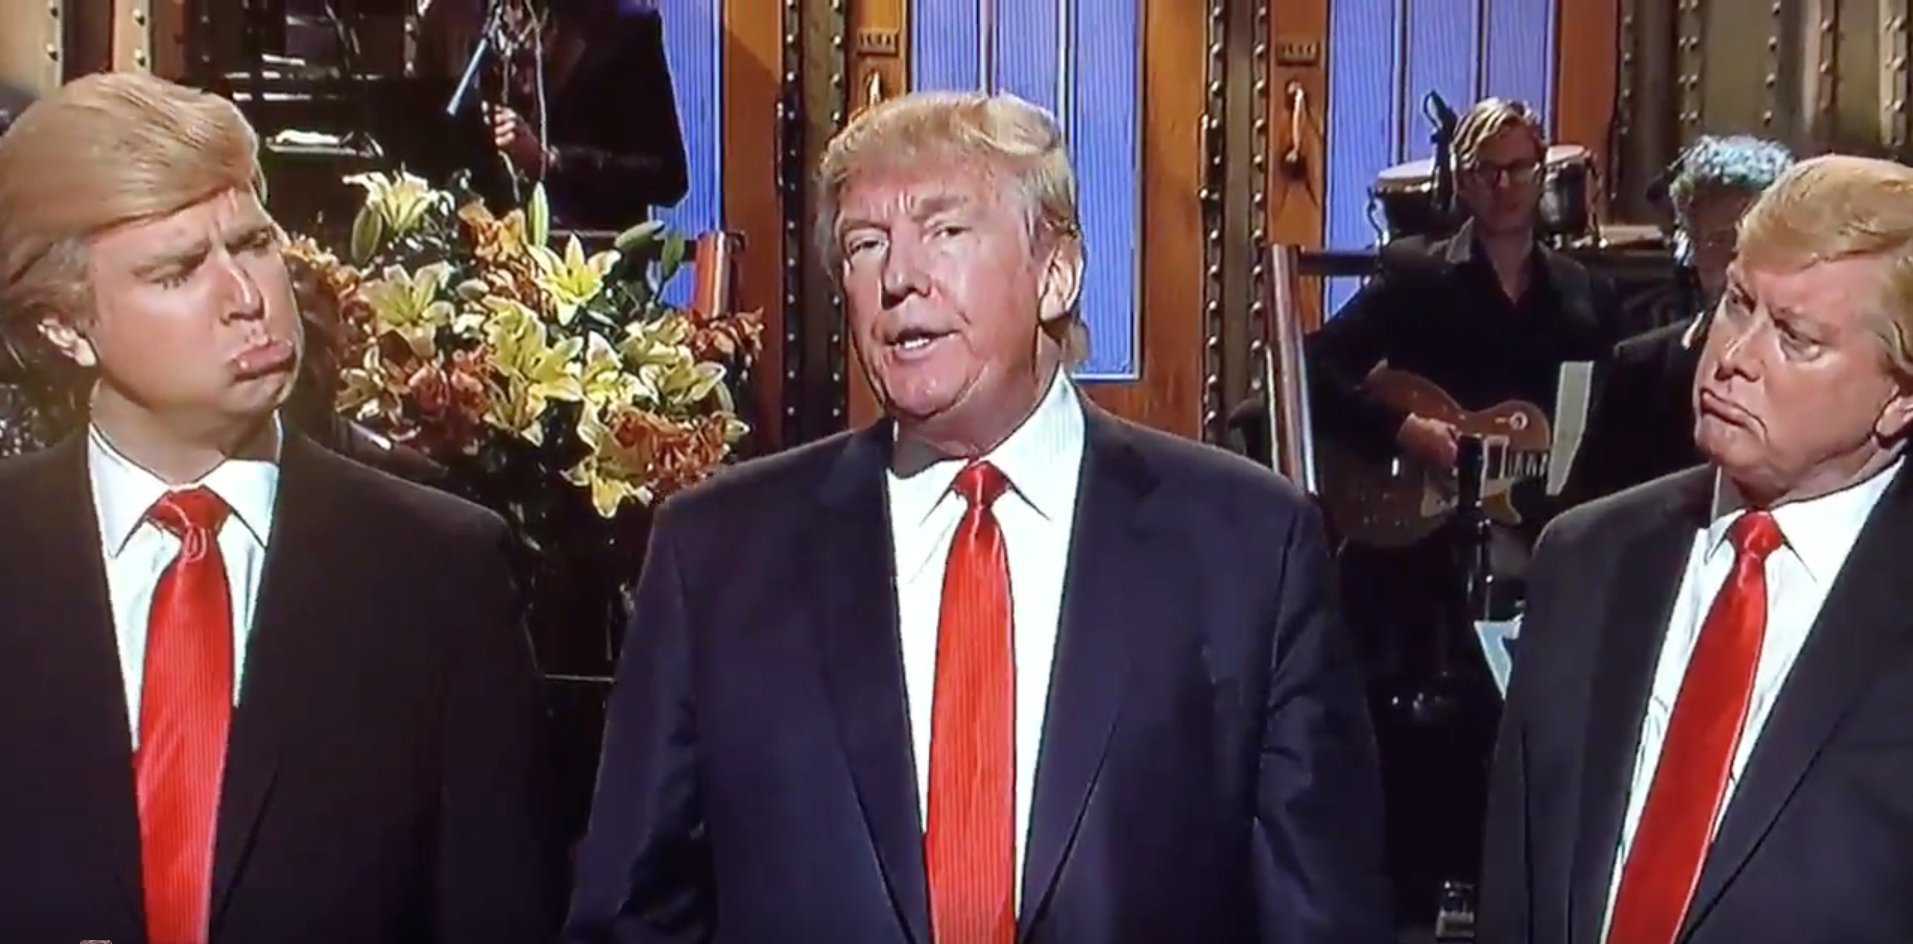 Donald Trump Makes Huuuge Appearance on Saturday Night Live (videos)